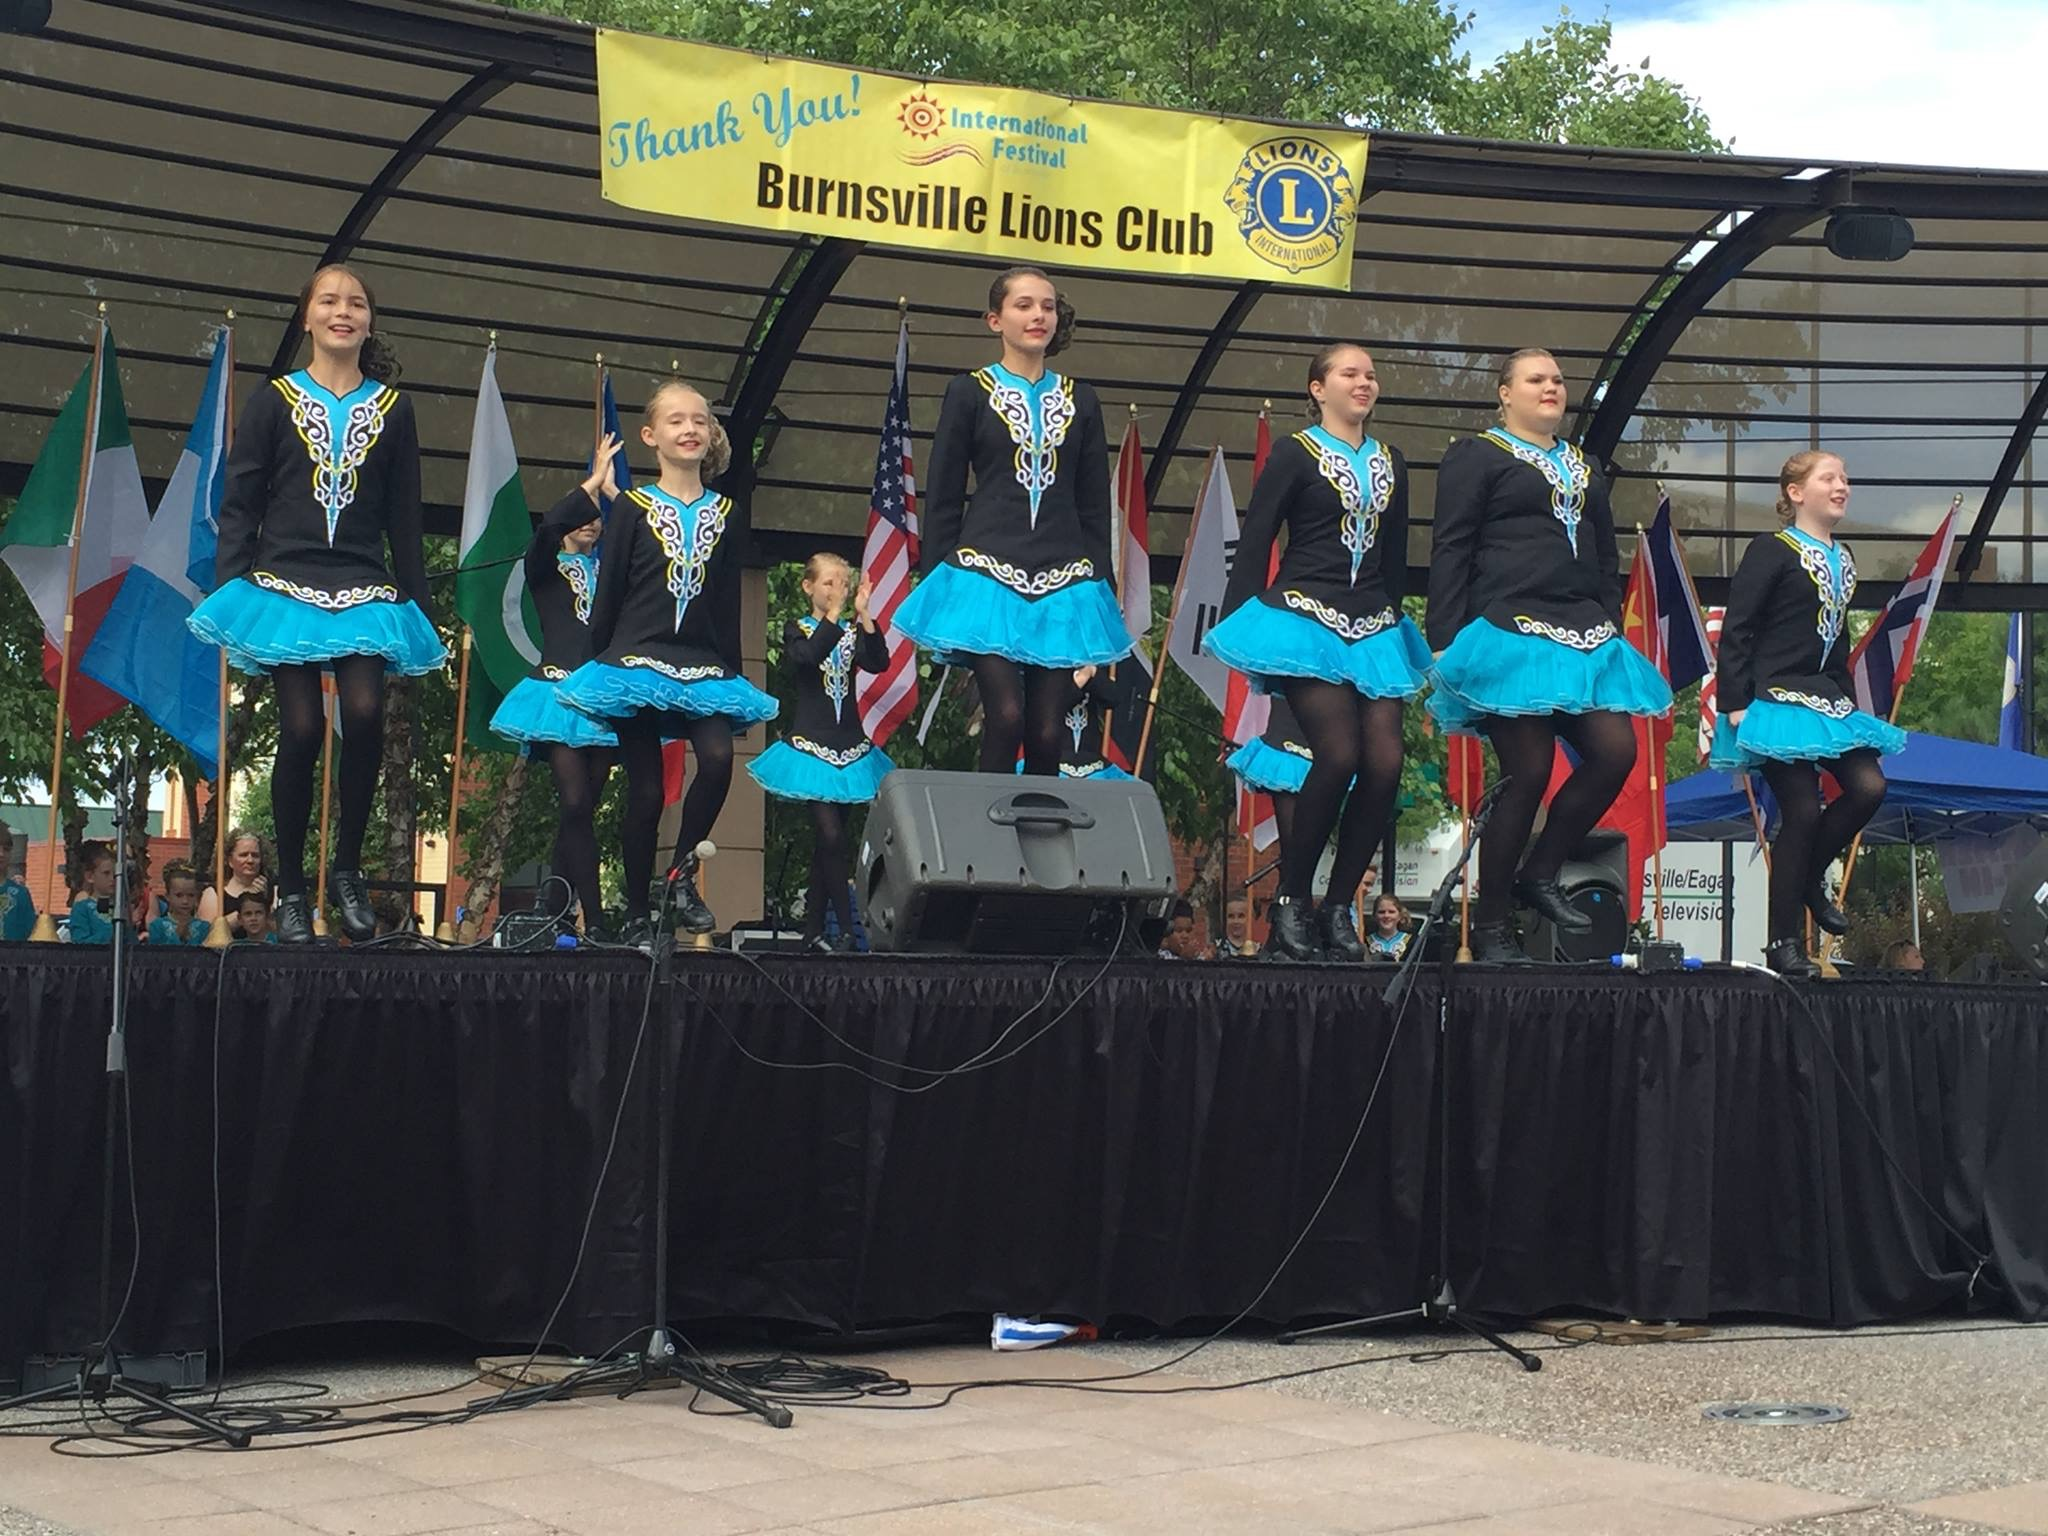 Rince Nua performs at International Festival